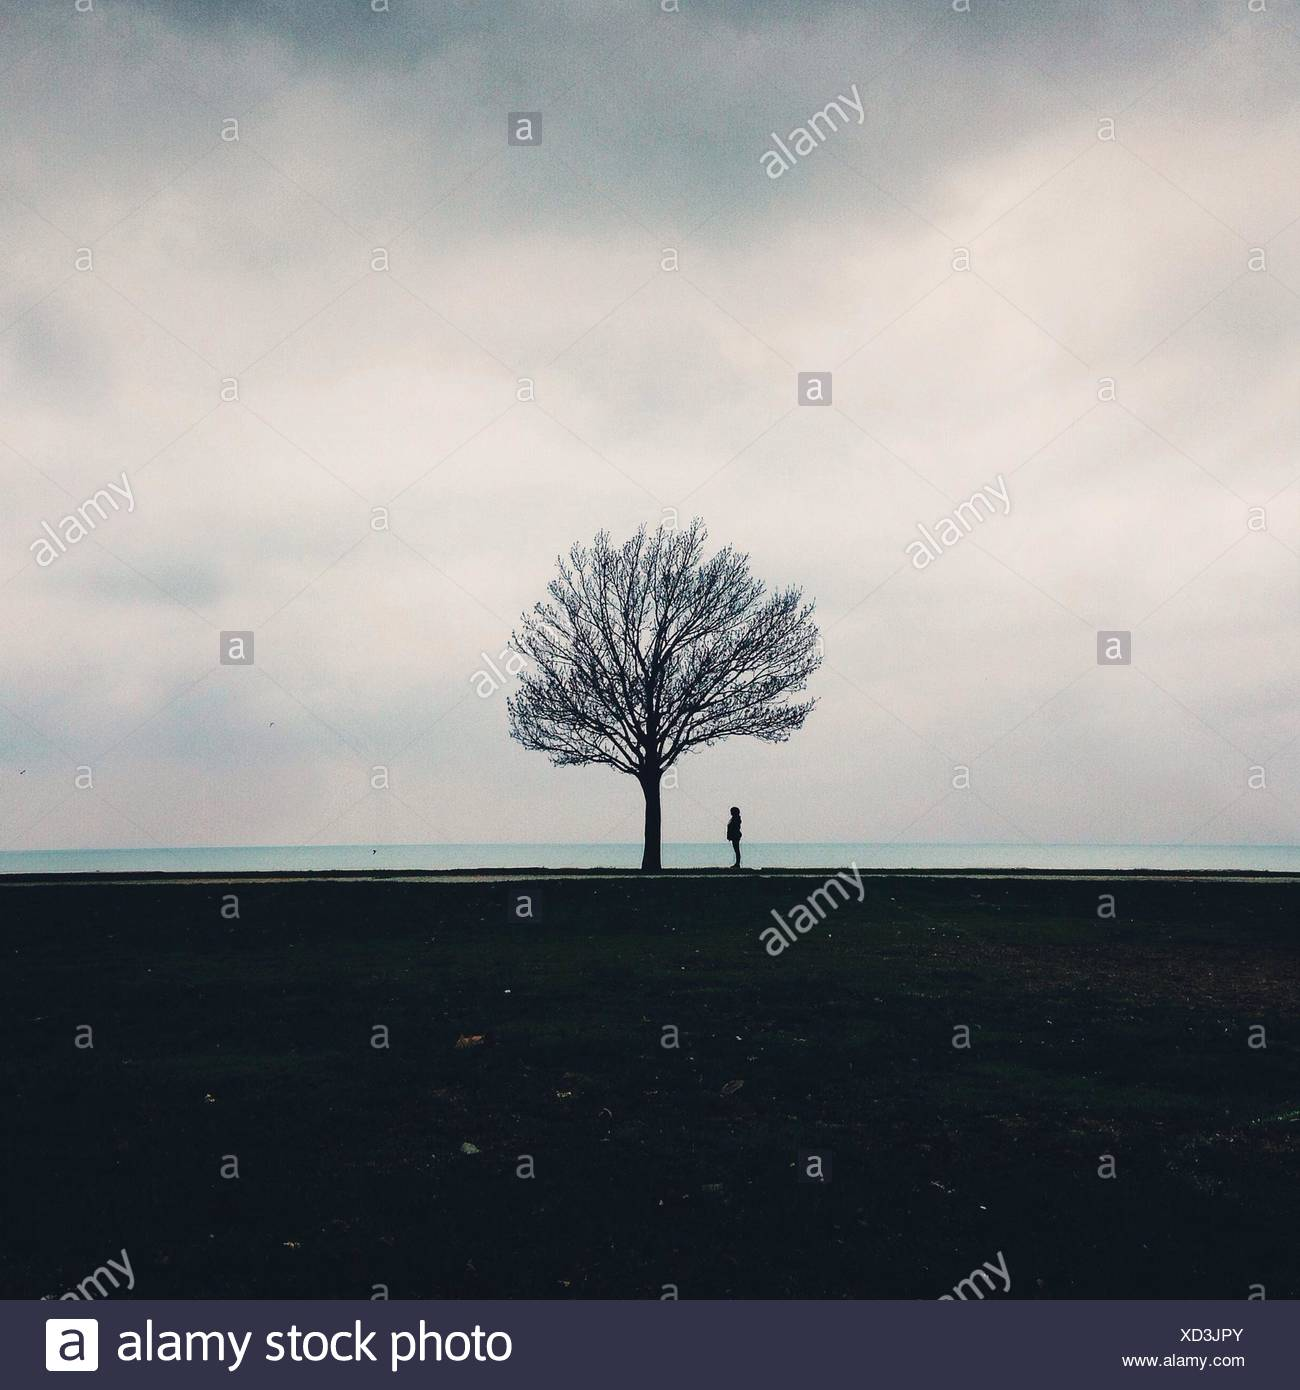 Silhouette Person Standing By Bare Tree On Field By Sea Against Cloudy Sky - Stock Image